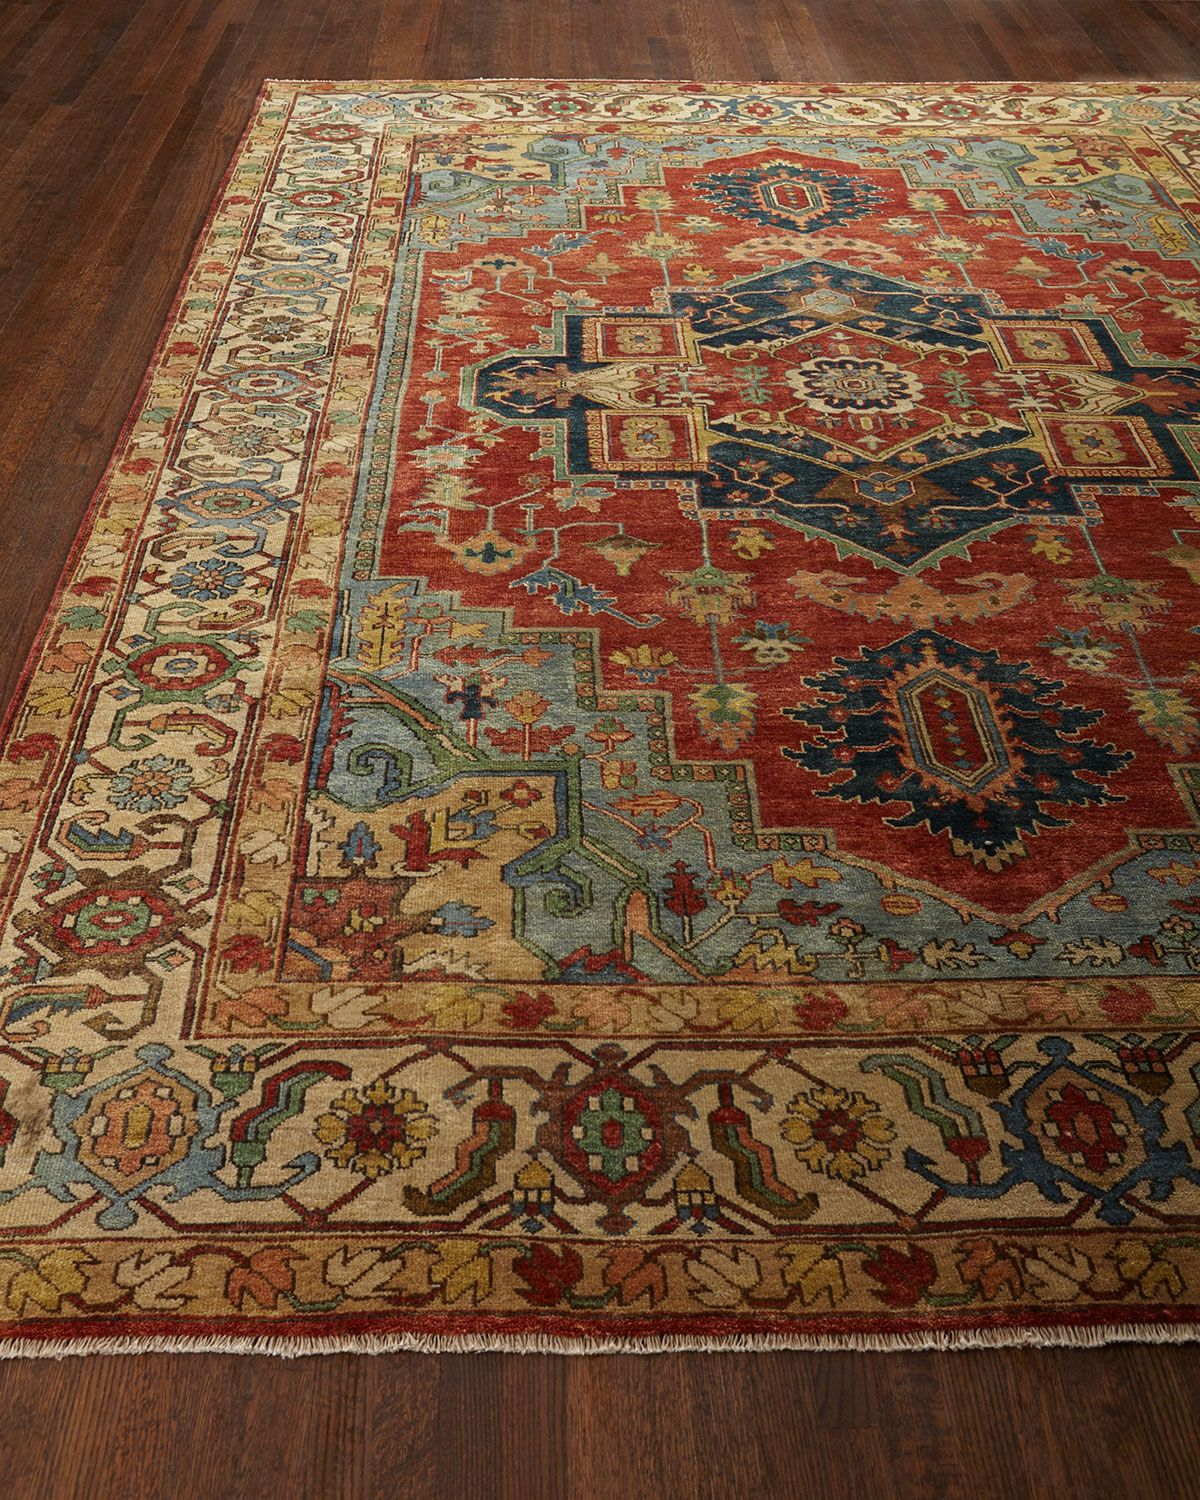 Exquisite Rugs Gracelyn Rug 12 X 15 Exquisite Rugs Rugs Serapi Rug